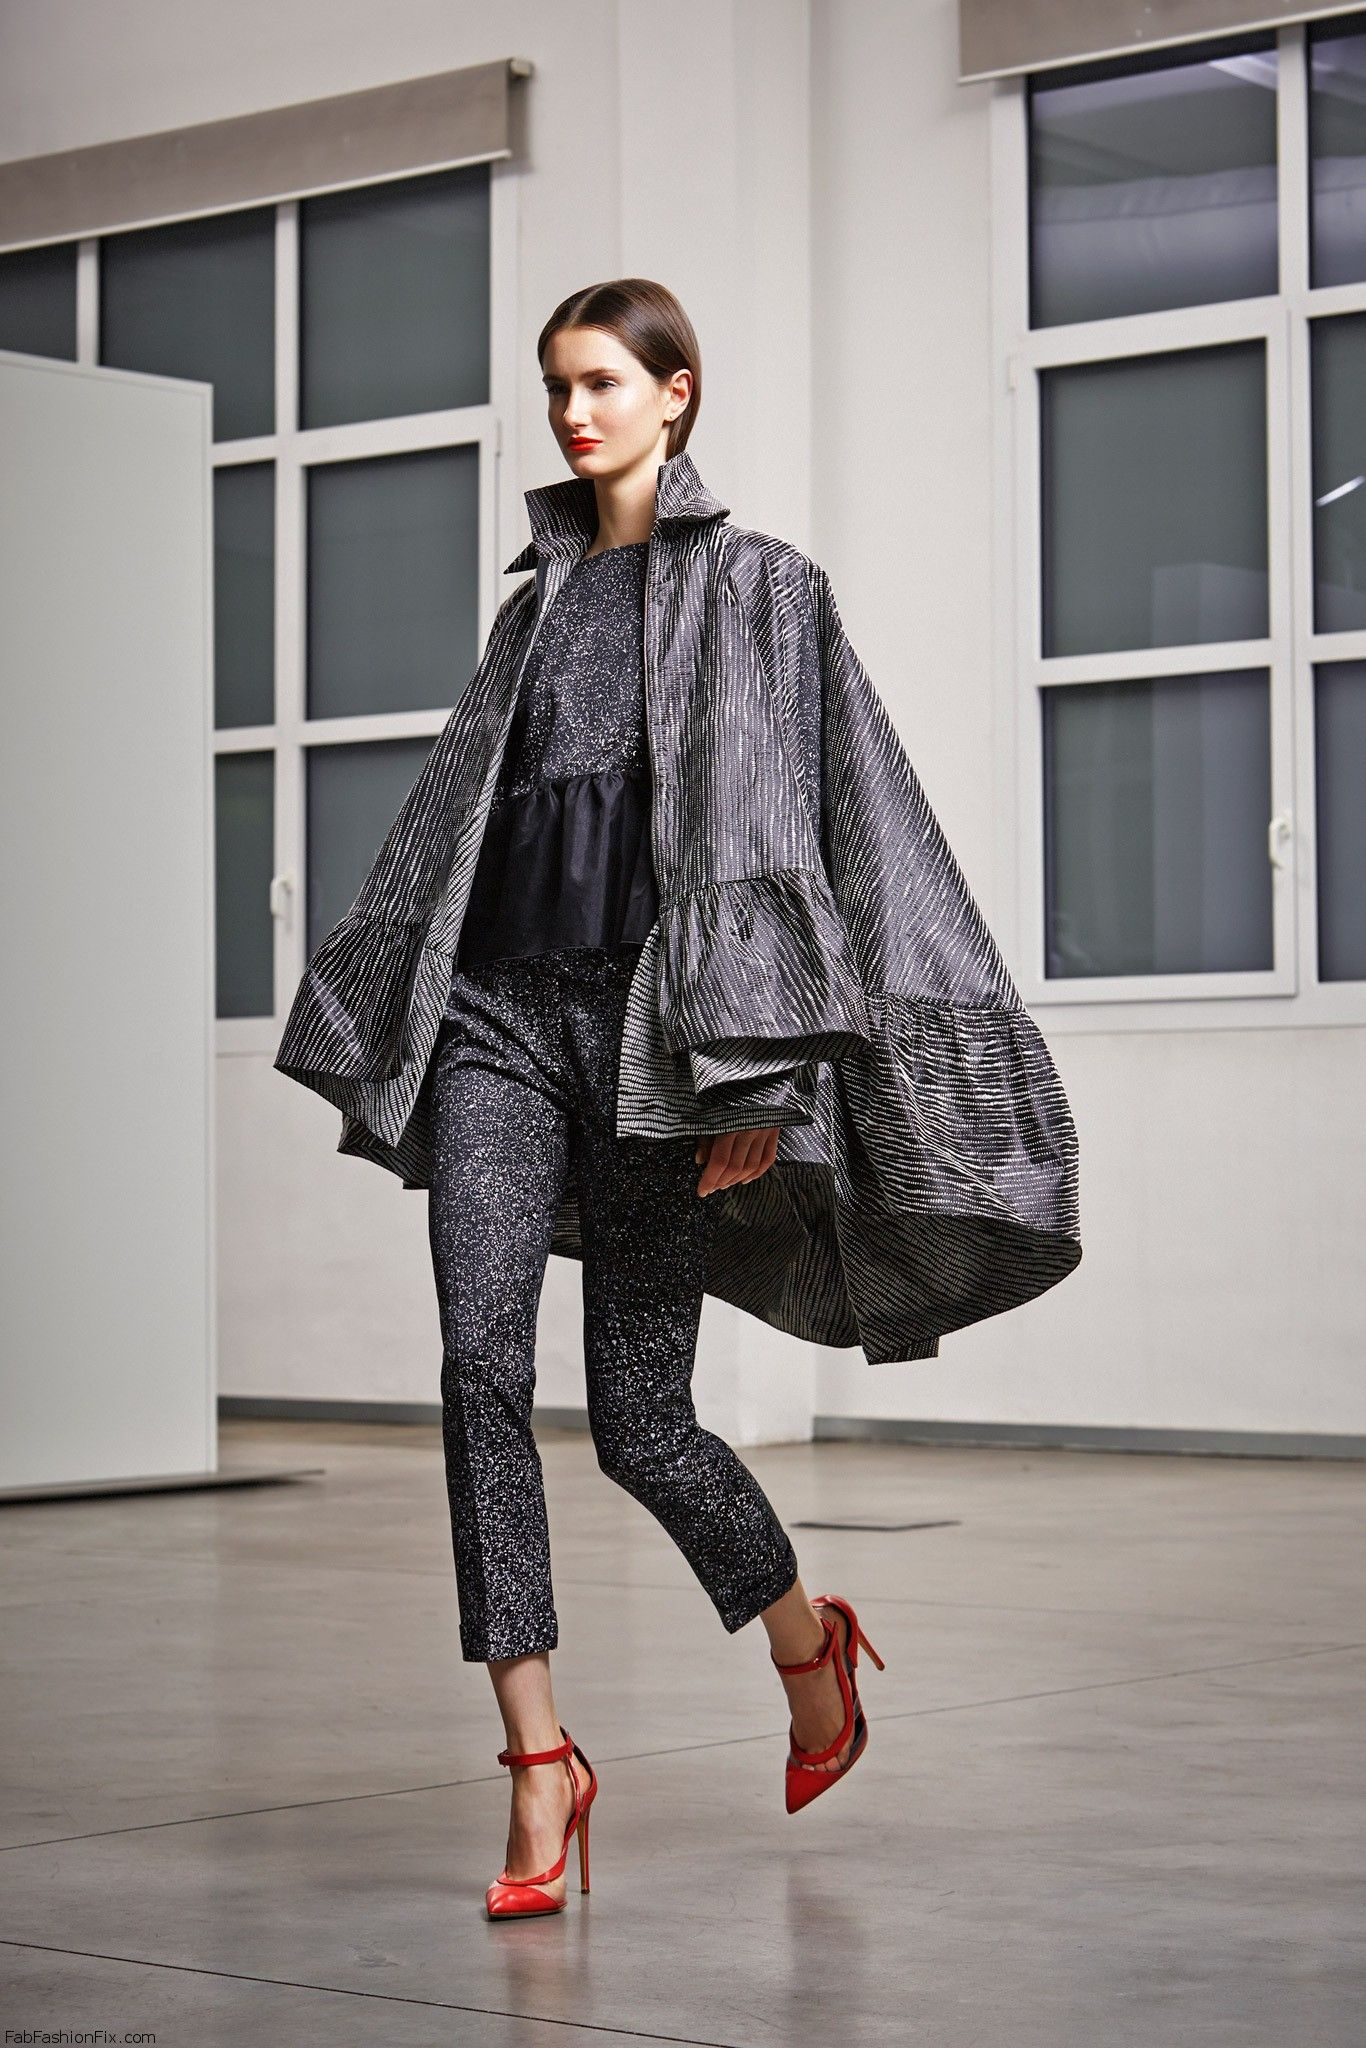 antonio berardi prefall 2014 collection fab fashion fix